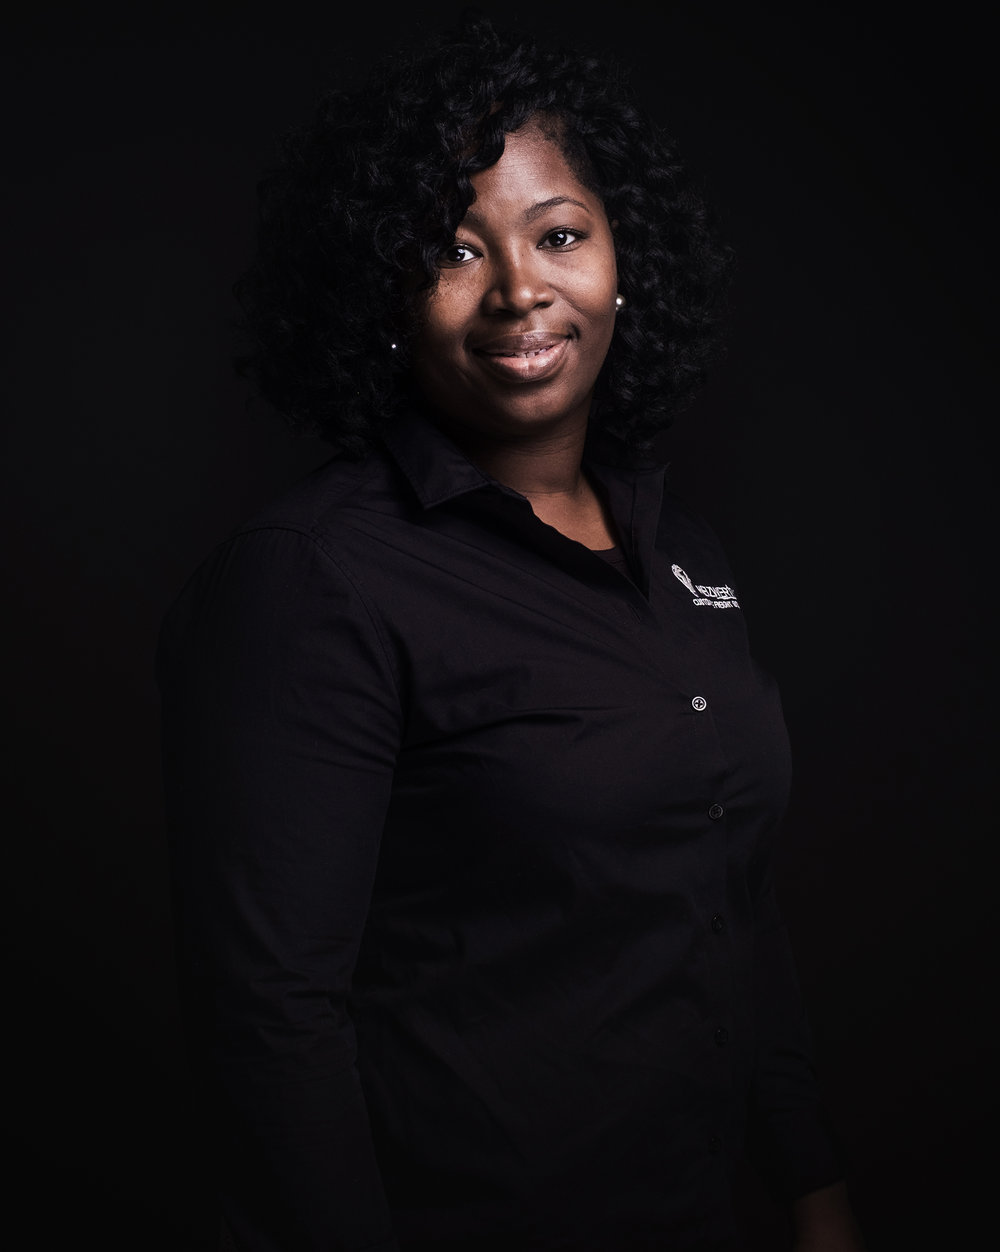 Latoria Harris - waksē exclusive Licensed Customs BrokerLatoria Harris is the license holder and founder of Heizwerthy Customs & Freight Solutions LLC, a customs brokerage firm that provides customs clearance, international transportation, and assistance with international purchases. More…